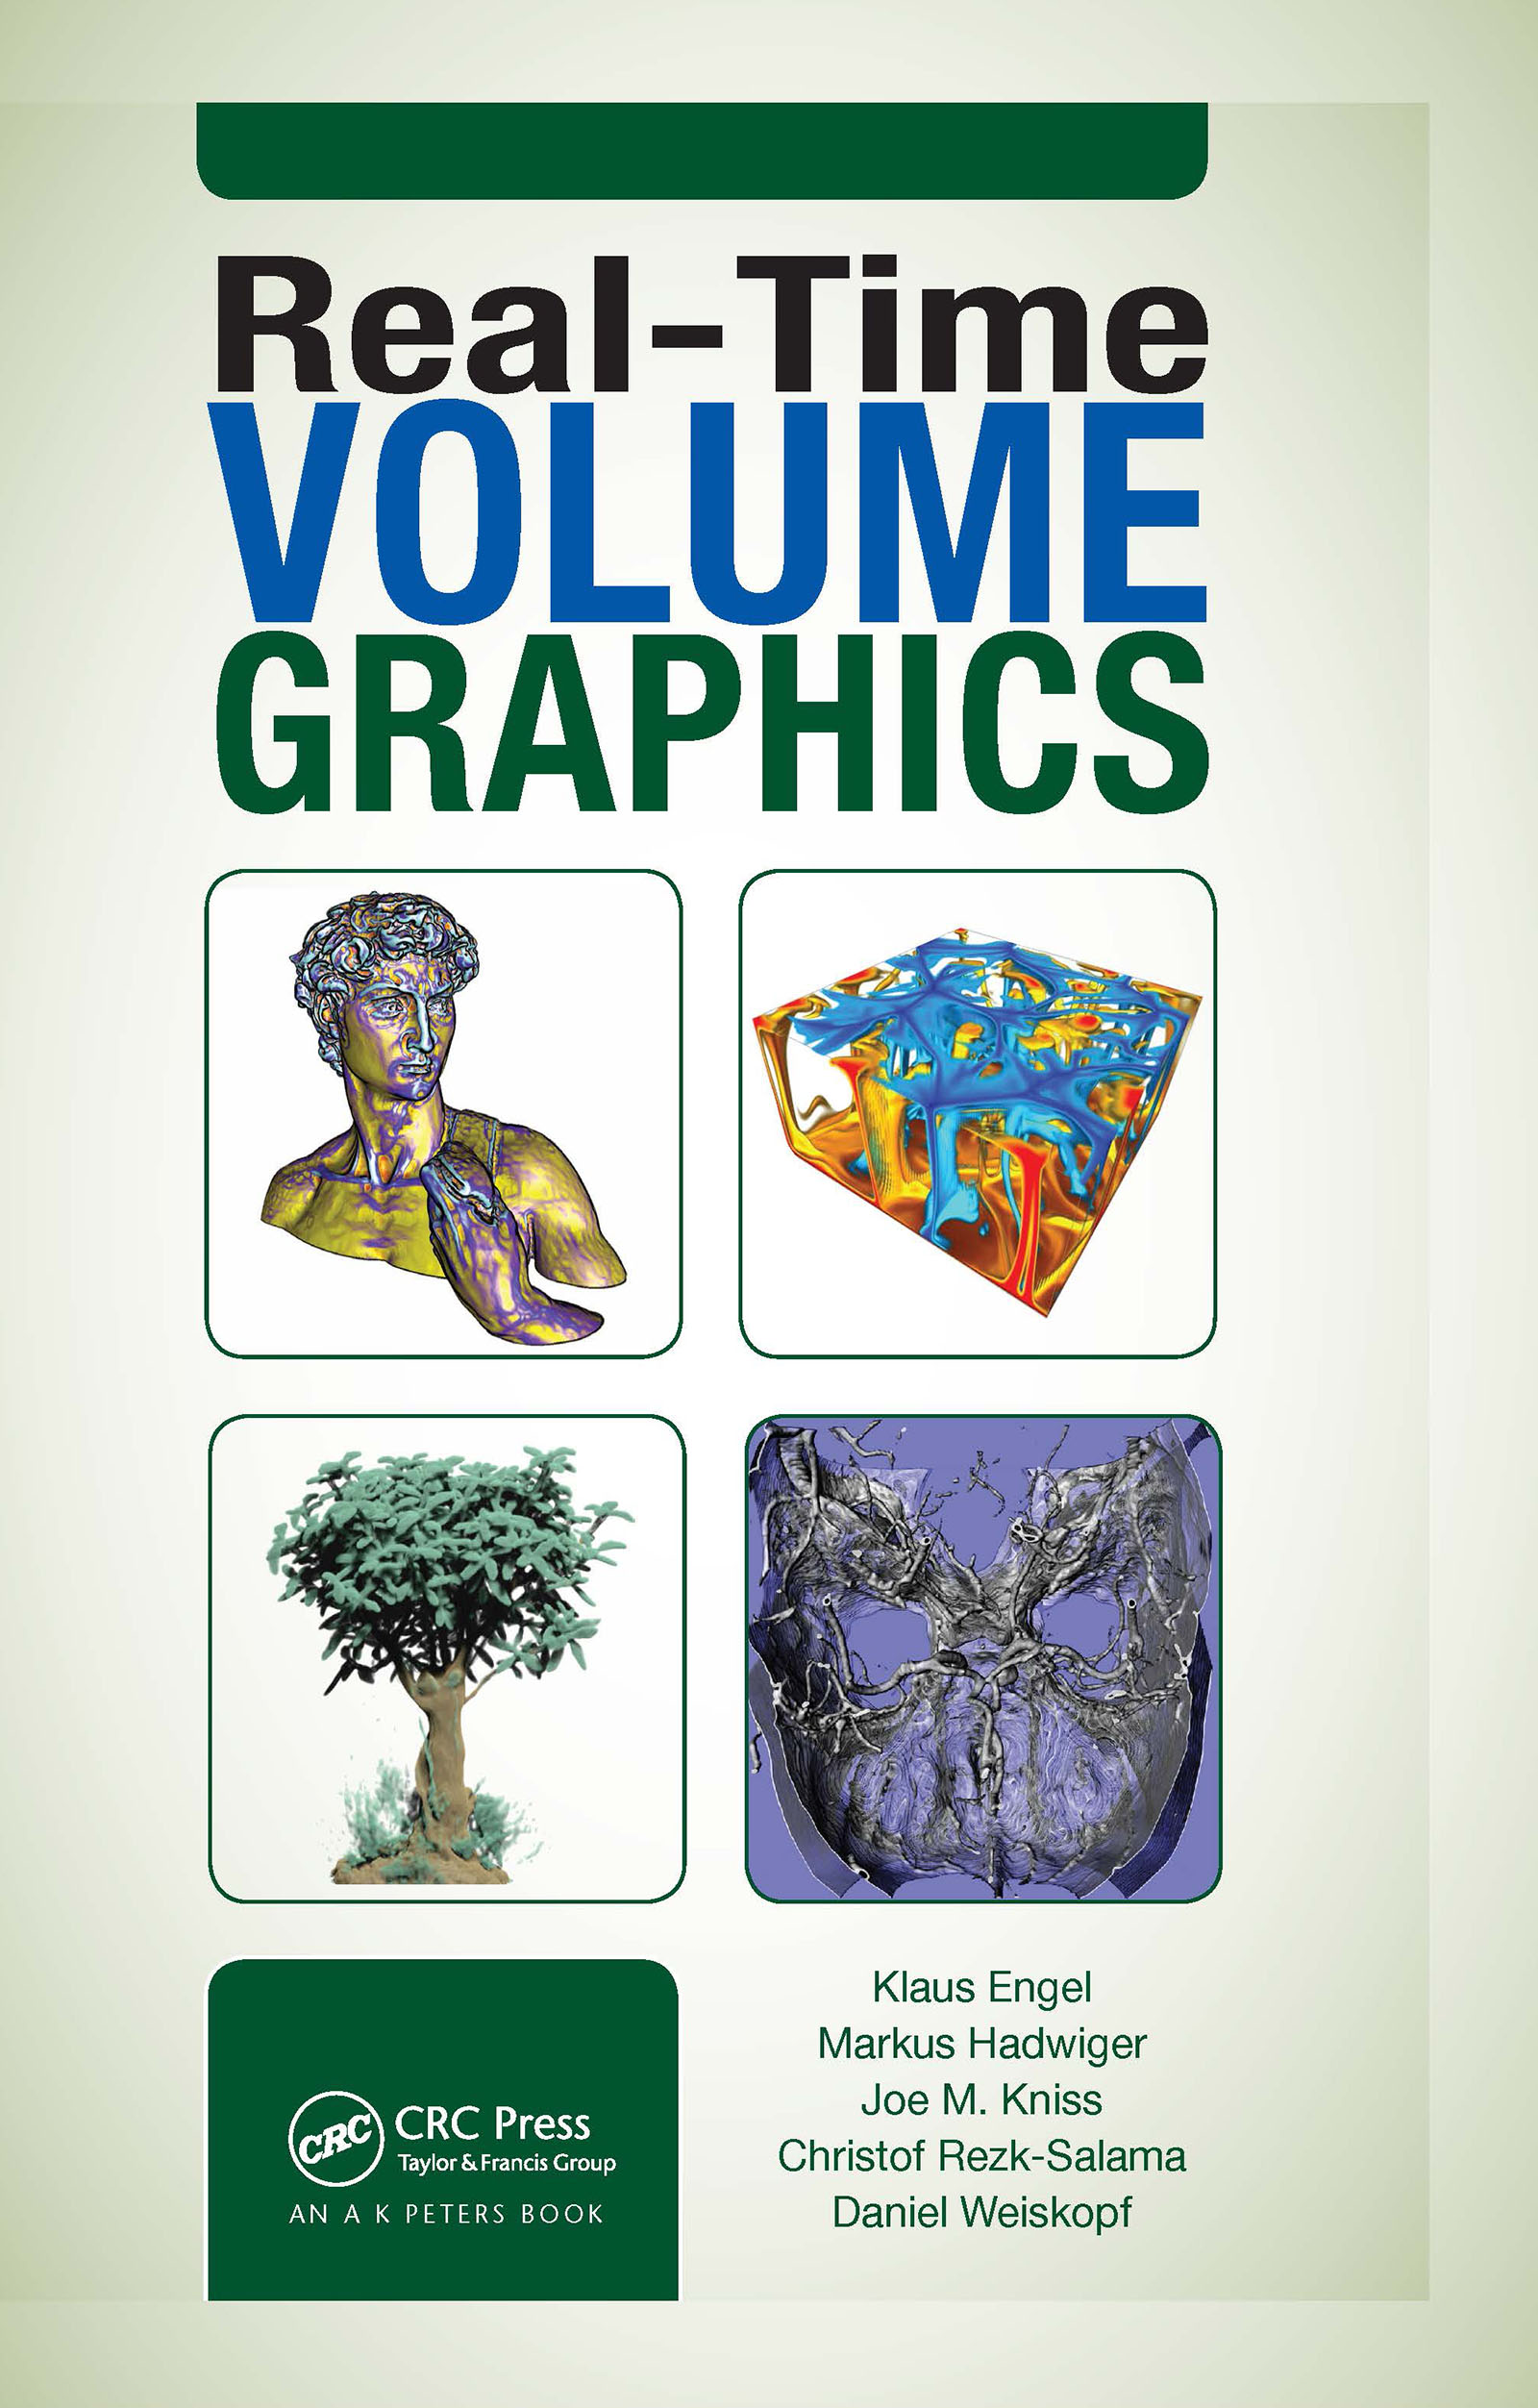 Real-Time Volume Graphics book